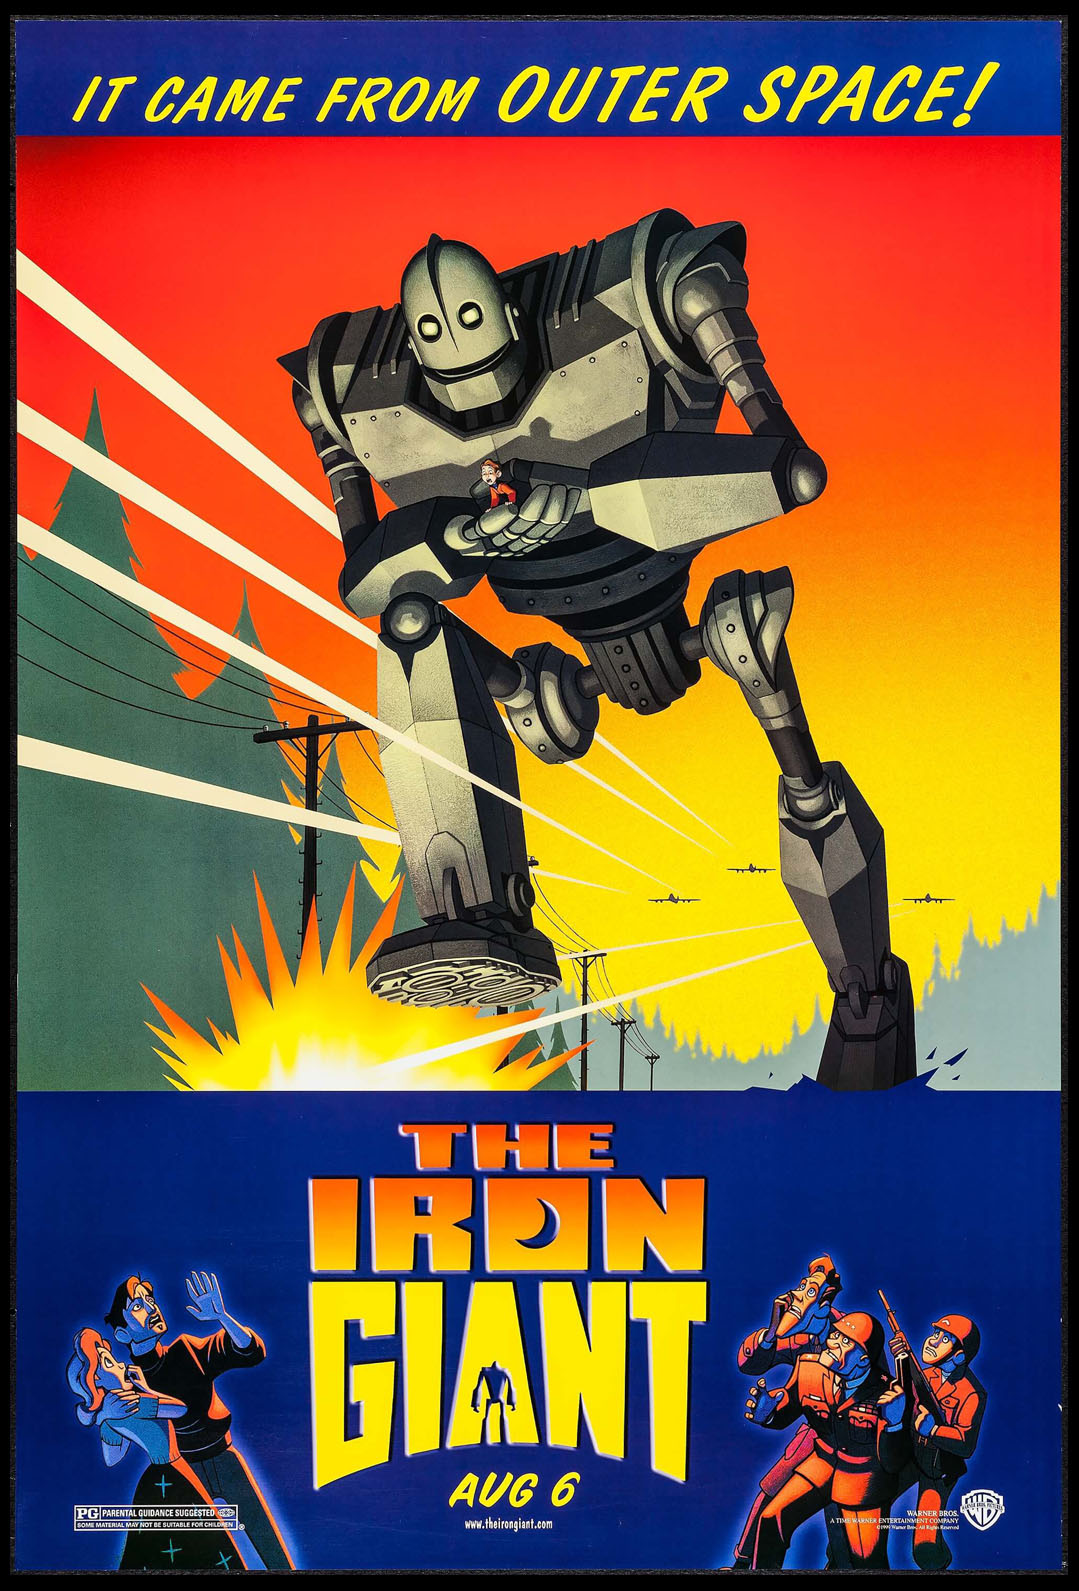 IRON GIANT, THE @ FilmPosters.com